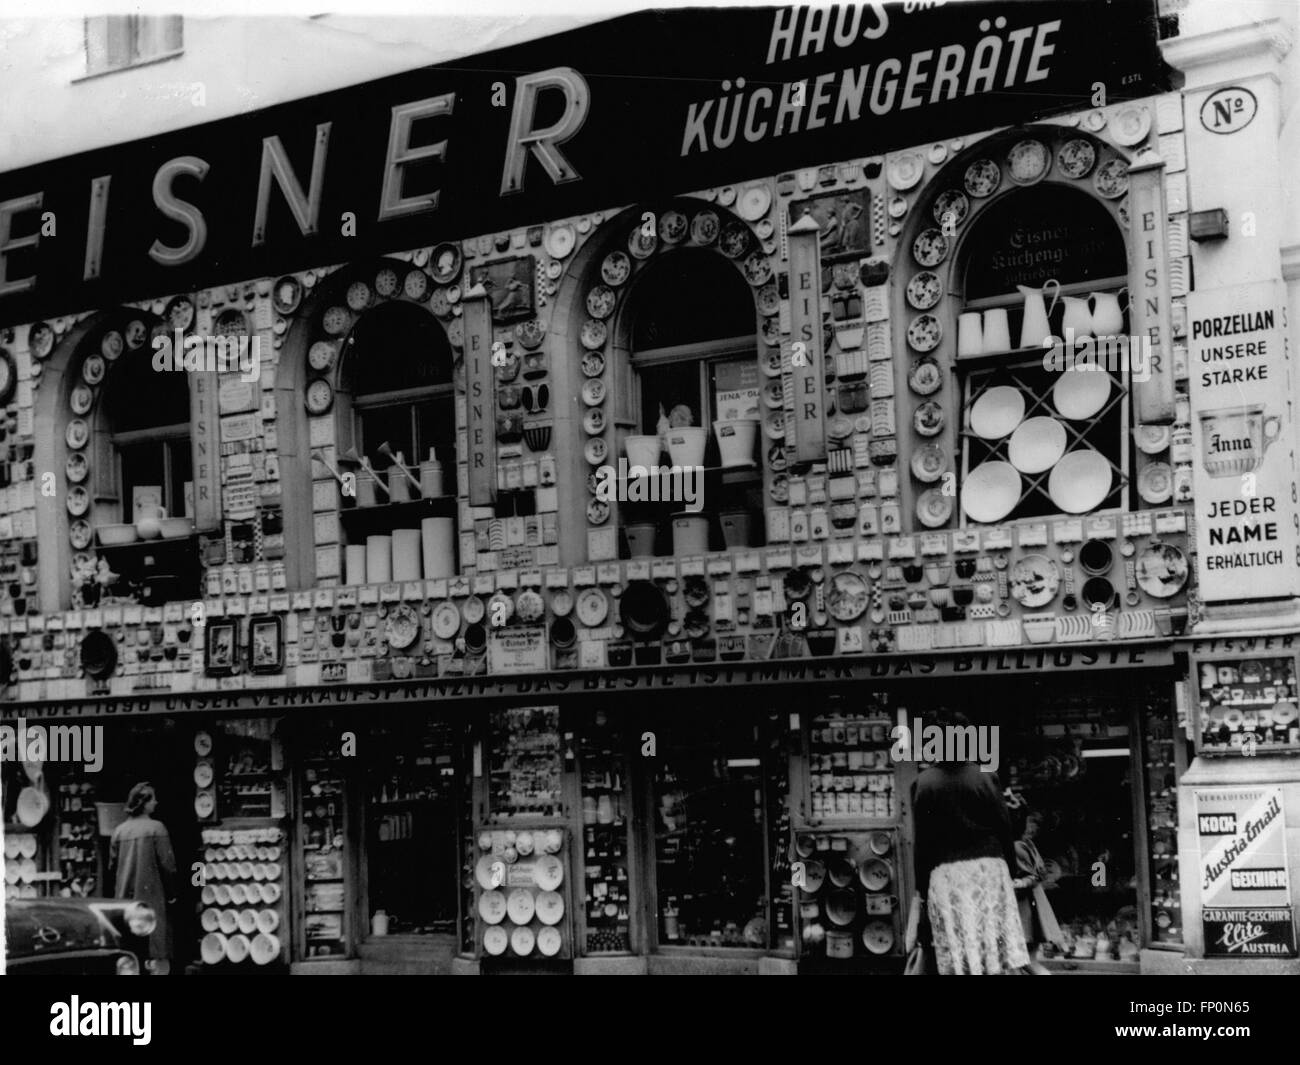 Küchengeräte Premiere No Sale Shown Stock Photos No Sale Shown Stock Images Alamy